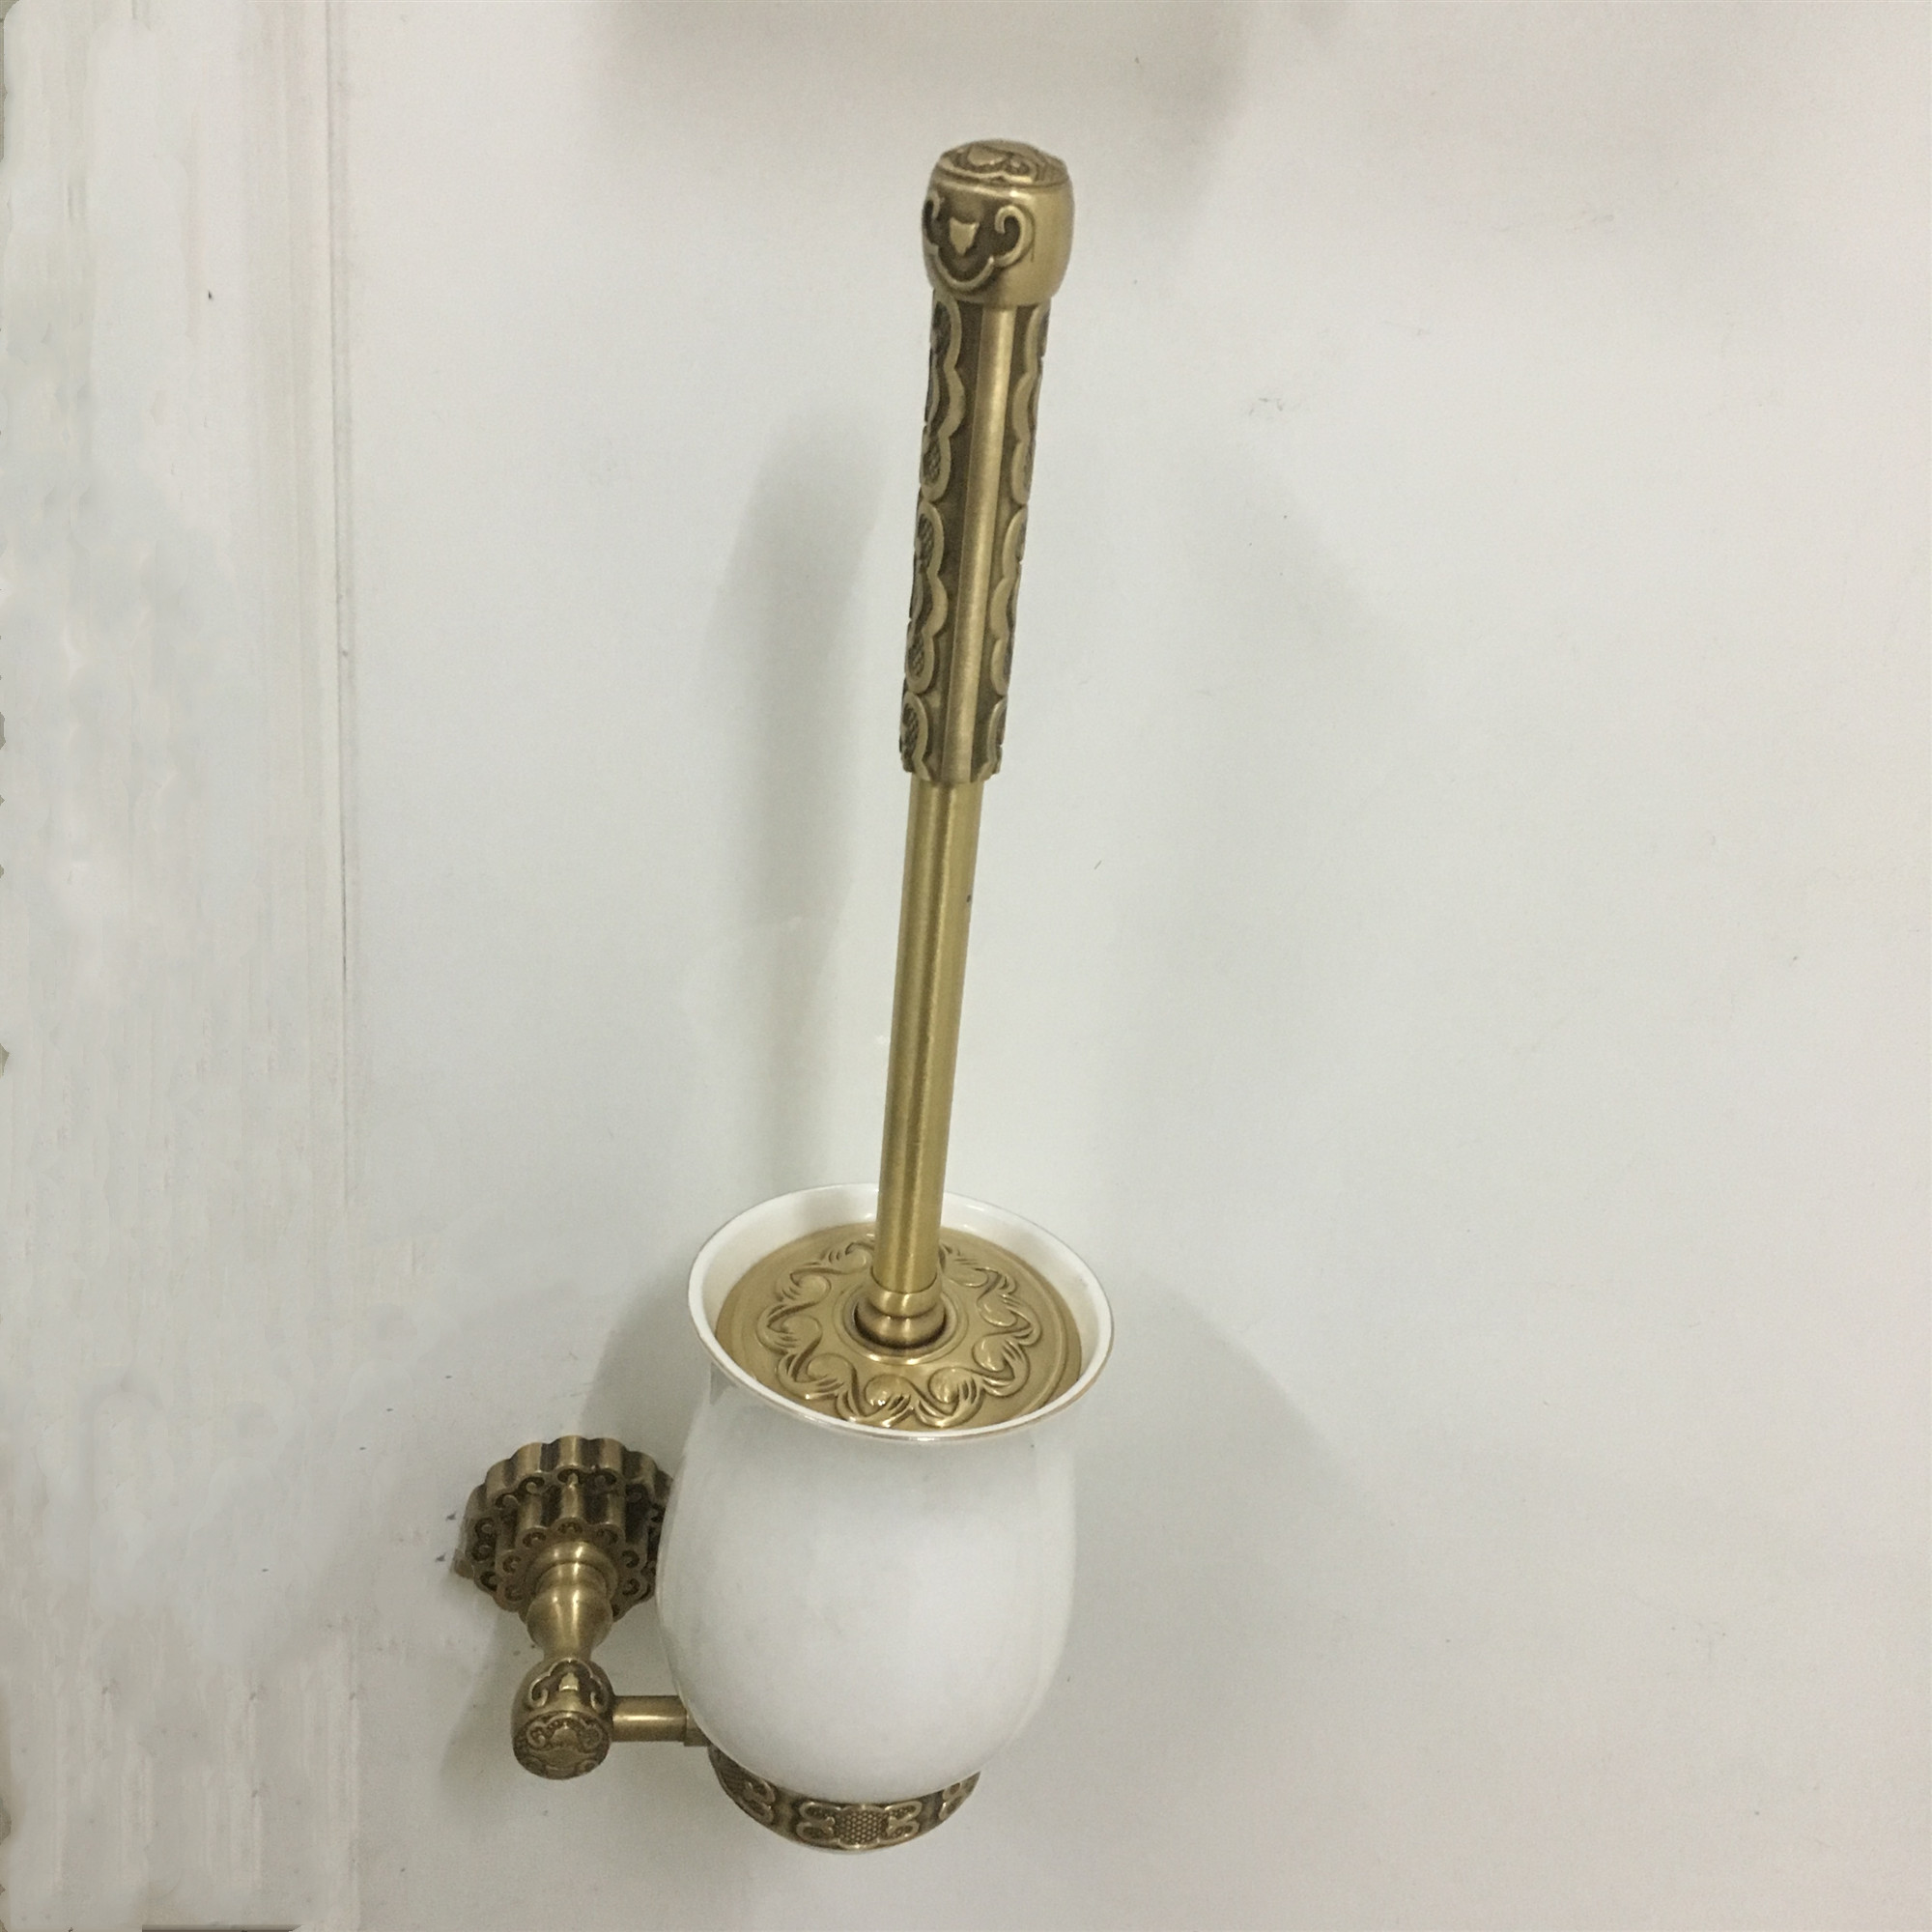 Toilet Brush Holders Antique Wall Mounted Bathroom Accessories Brass Bathroom Decoration Accessory Bathroom Products 10709F